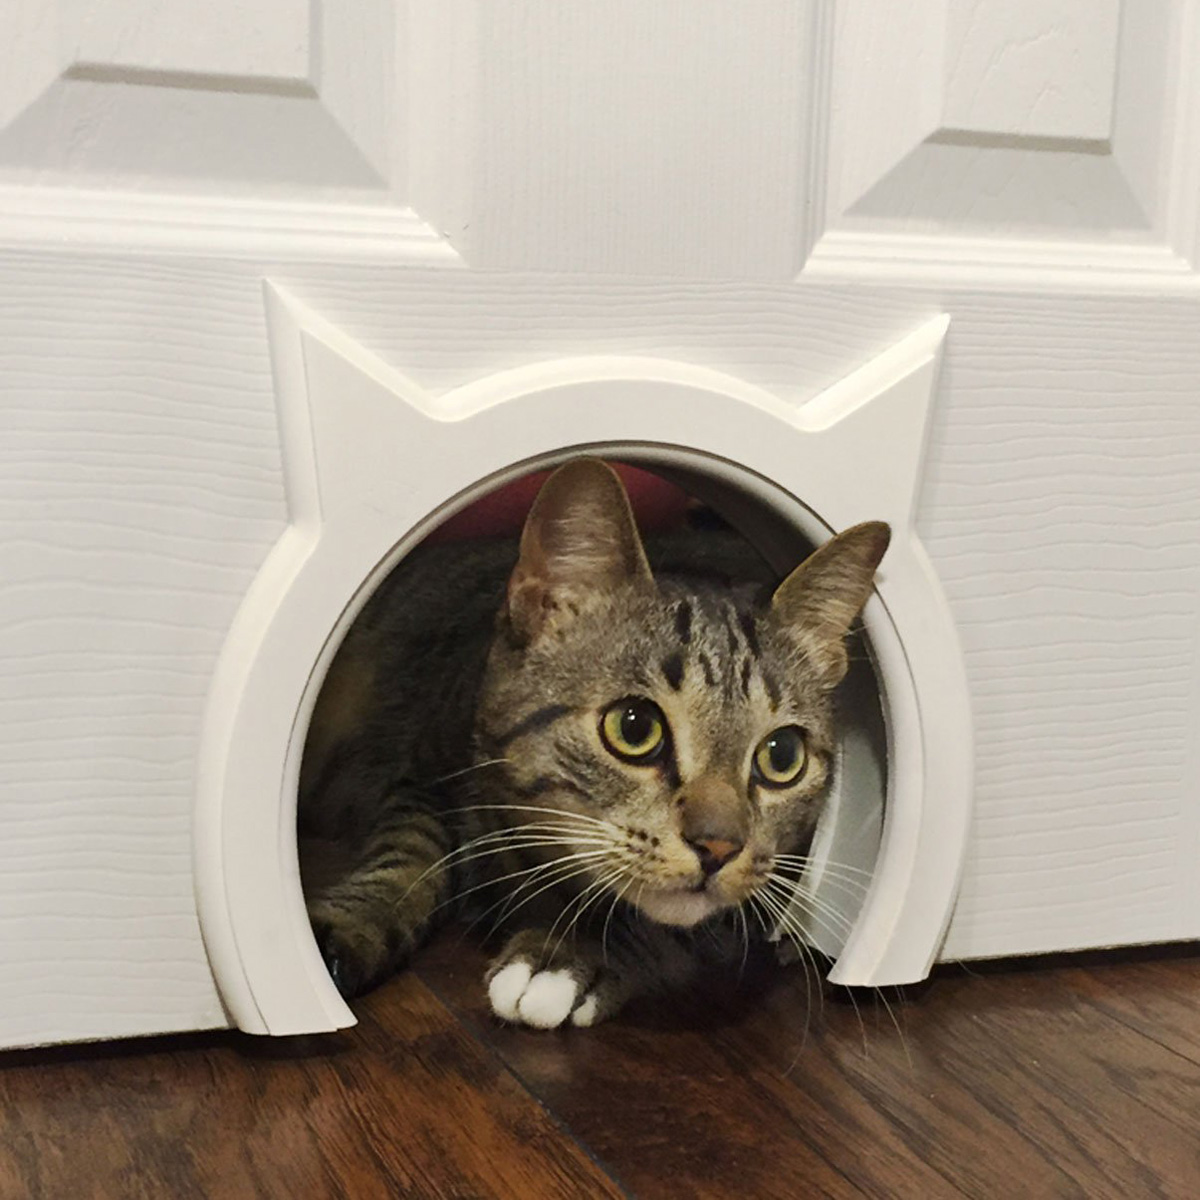 Kitty pass interior cat door the green head - The kitty pass interior cat door ...